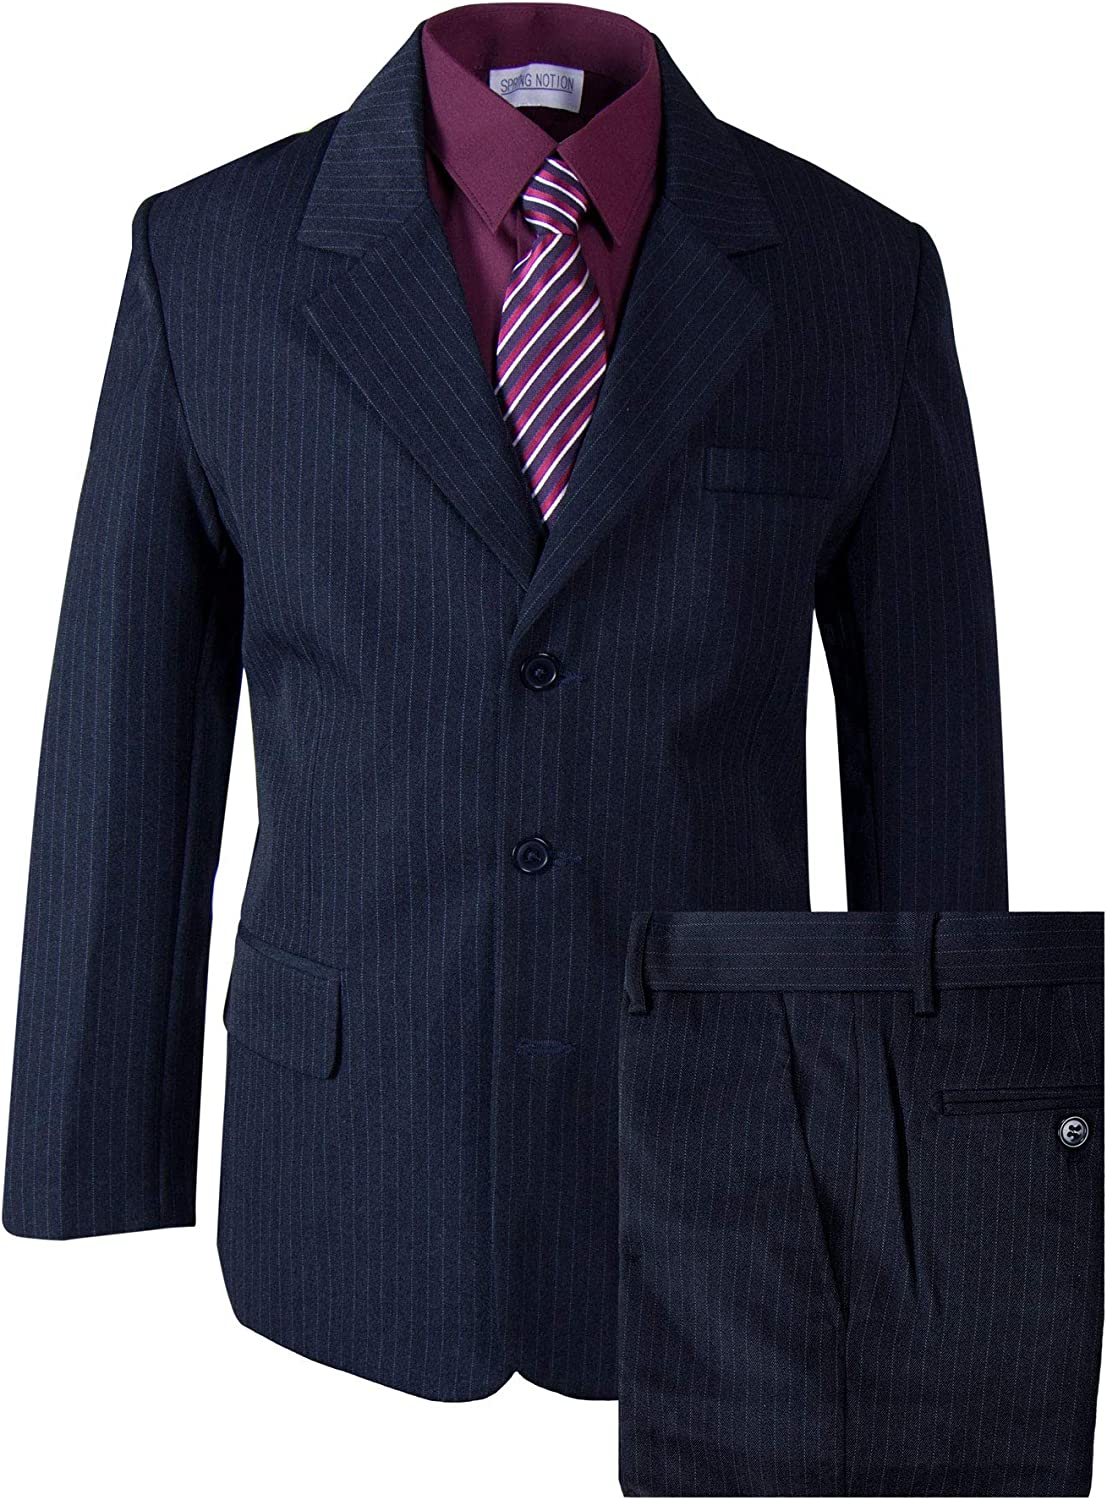 Spring Notion Boys' Pinstripe Black Suit with Matching Tie and Bow Tie